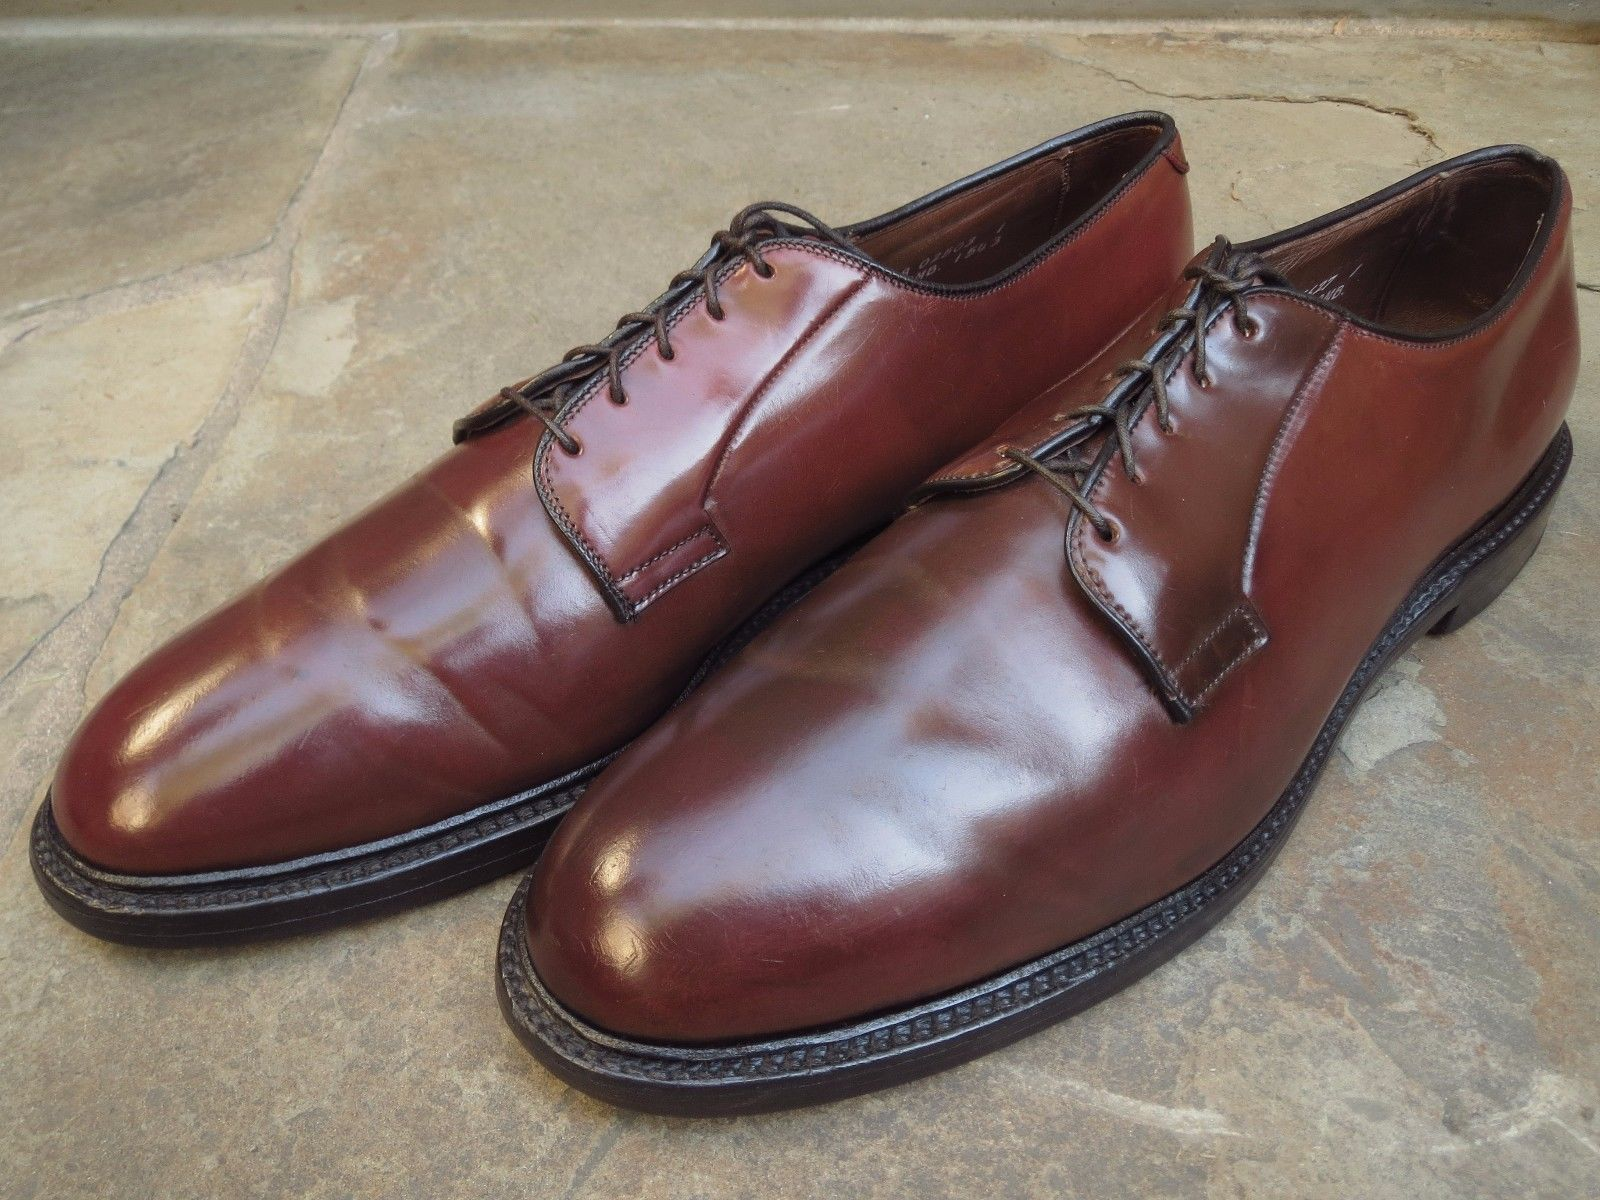 3c788e9d64d ... plain toe shoes brown 13 aa allen edmonds shoes Allen Edmonds Leeds  Shell Cordovan Plain Toe Shoes Brown 13 AA Allen Edmonds Shoes alden  cordovan shoes